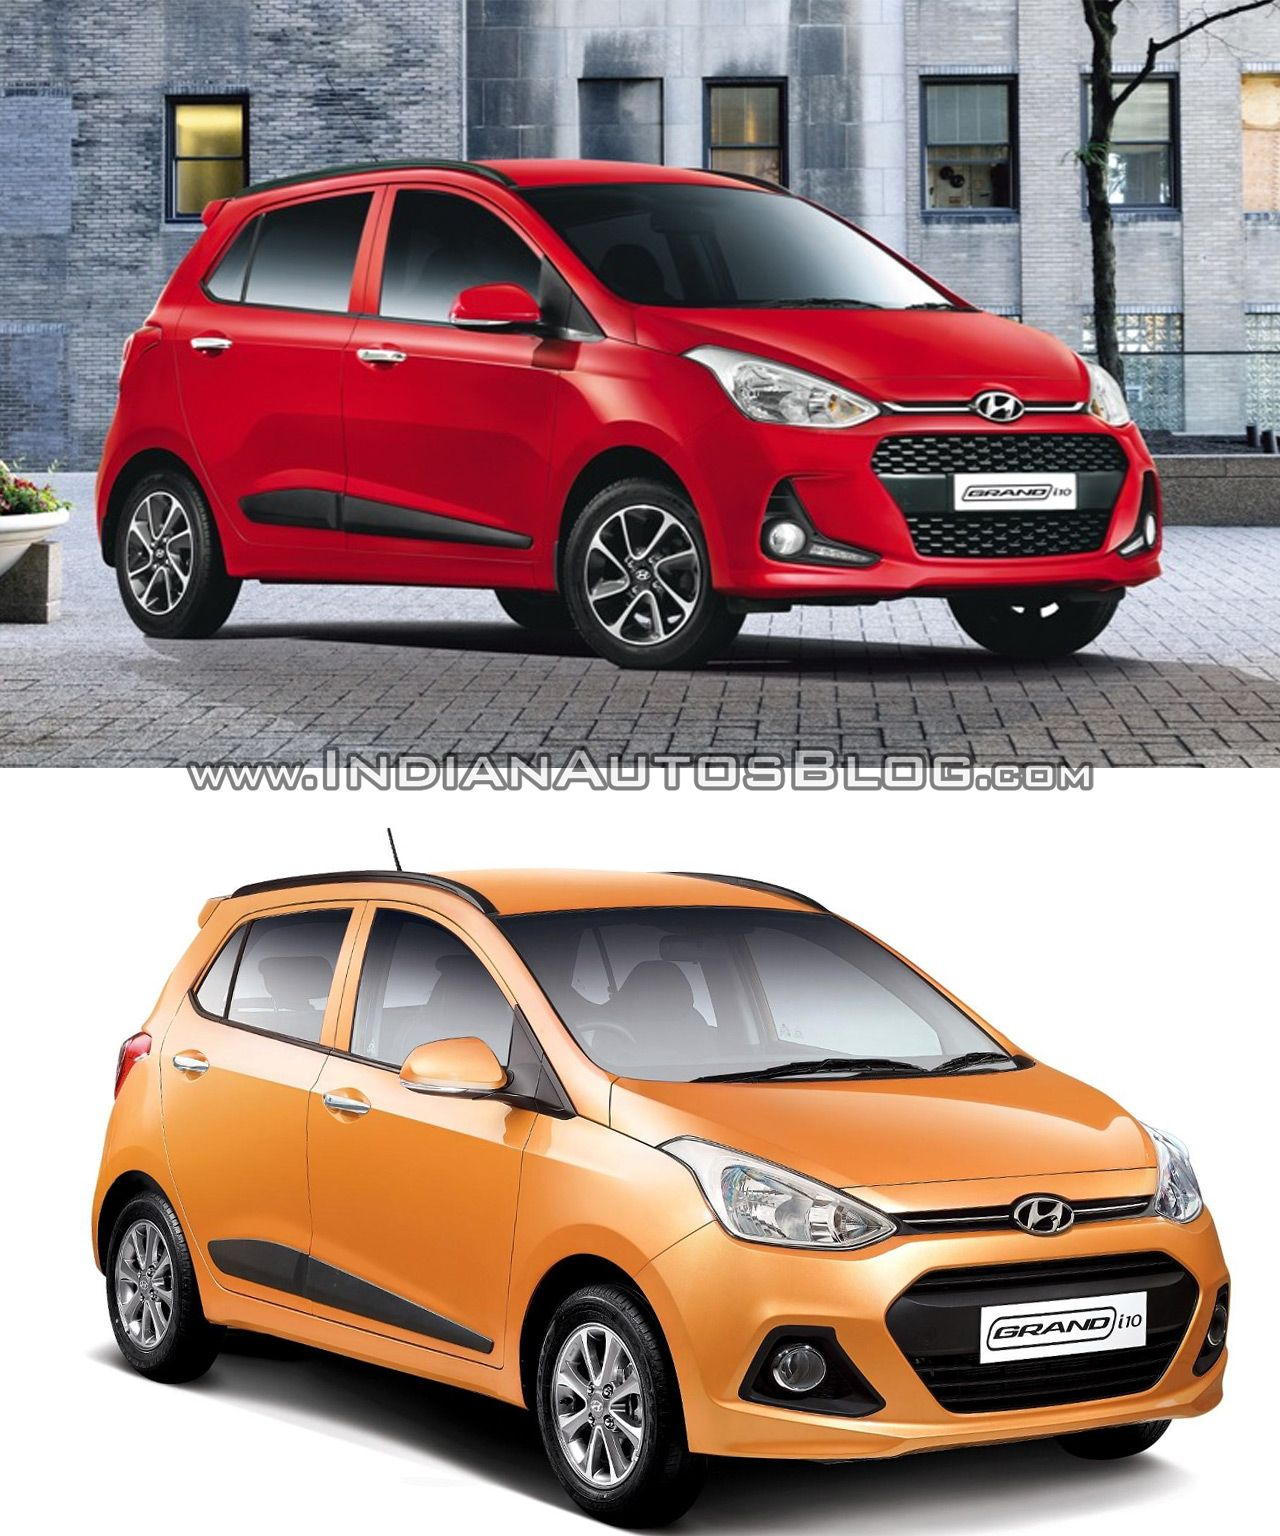 2017 Hyundai Grand I10 Vs 2013 Hyundai Grand I10 Old Vs New